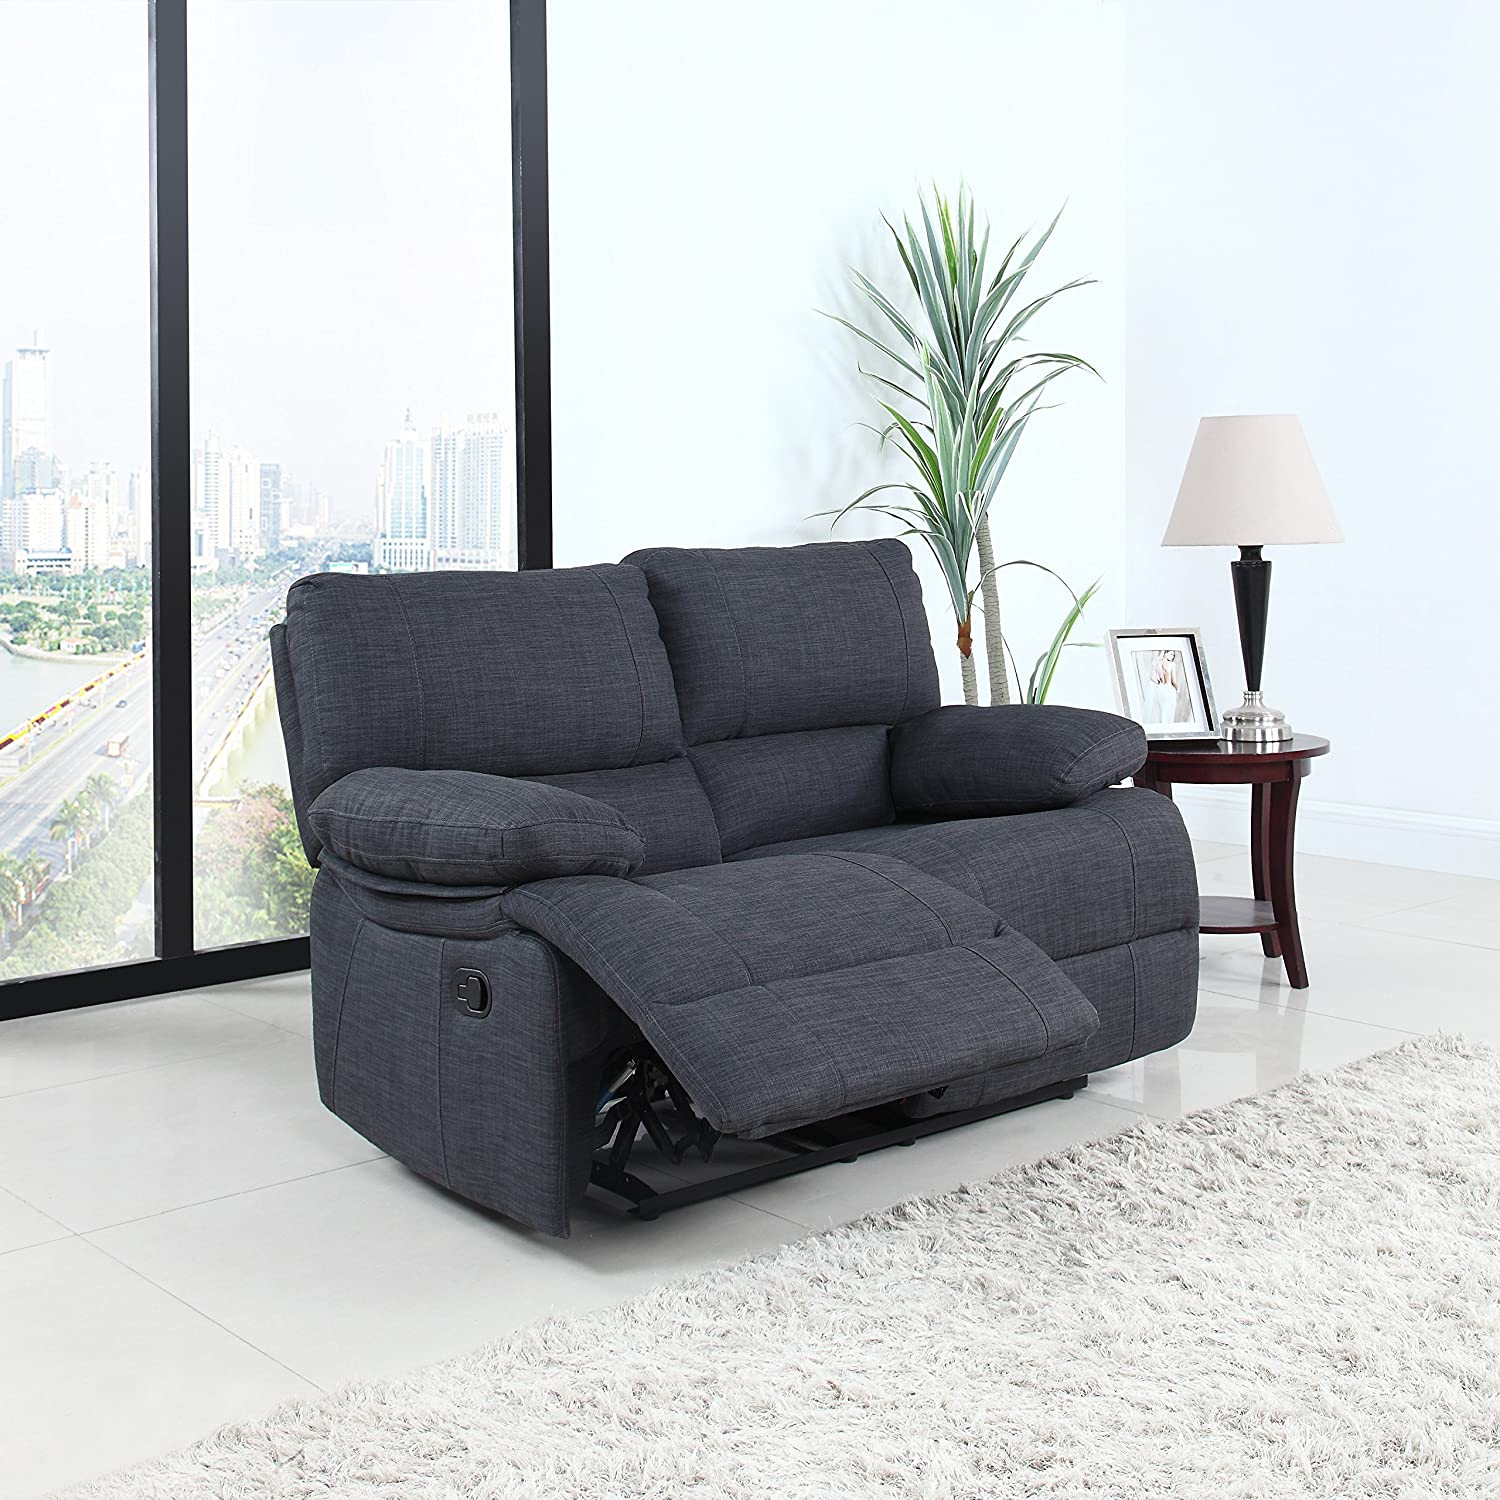 amazon com classic and traditional dark grey fabric oversize